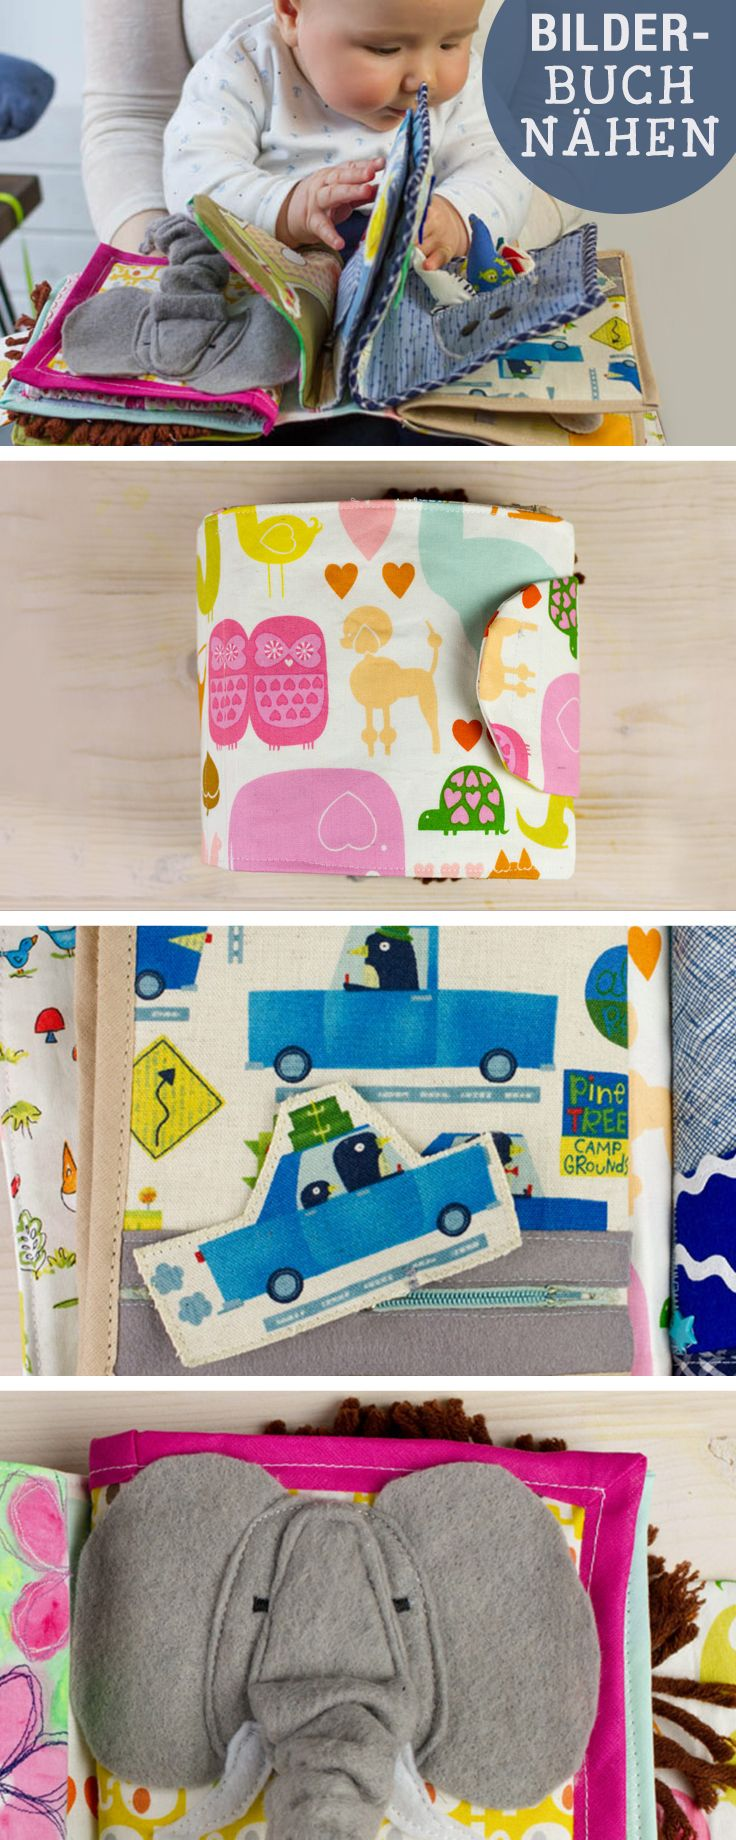 Nähanleitung für Babyspielzeug: Bilderbuch nähen / diy sewing tutorial: sew a colorful storybook for babys, learning, parenting via DaWanda.com